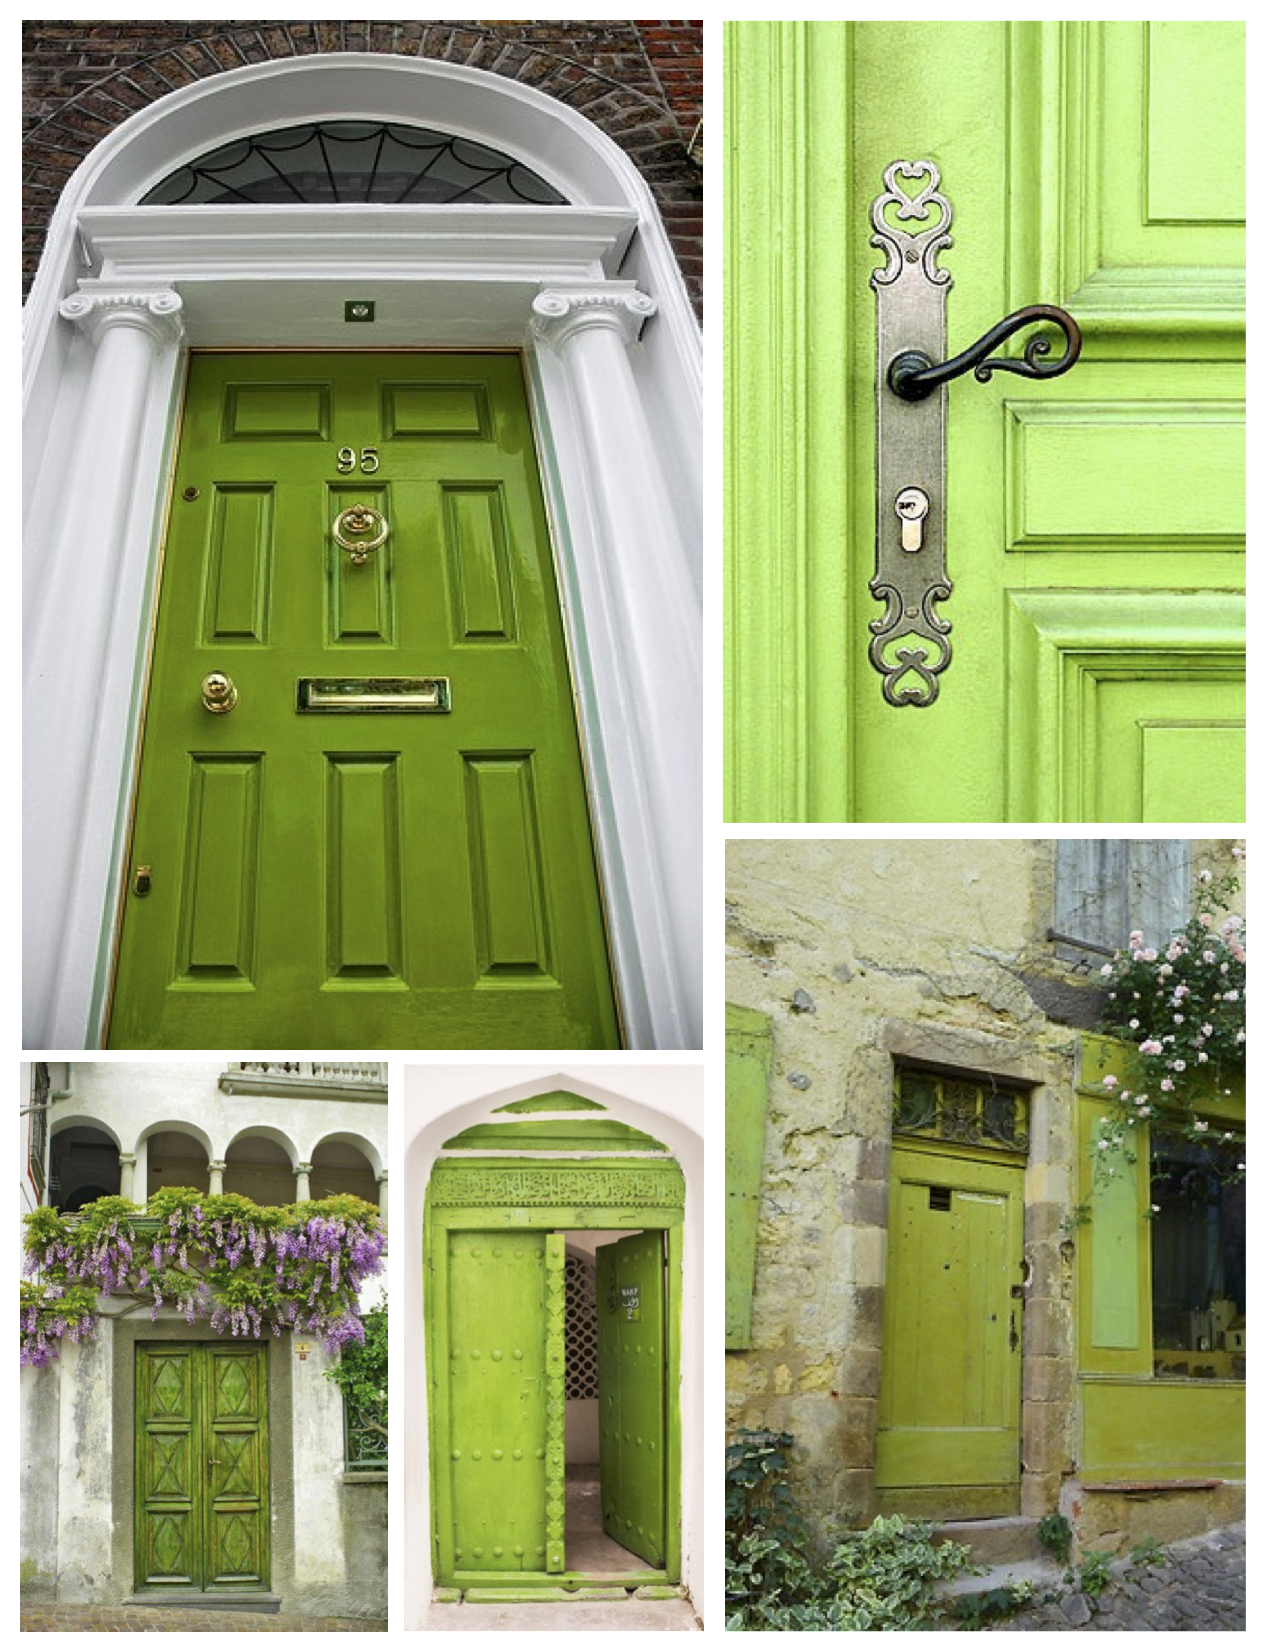 "1650 #7A9F2C  Green"" Delight: Fresh & Vivid Green Painted Doors The Painted Green save image Green Front Doors 47971275"